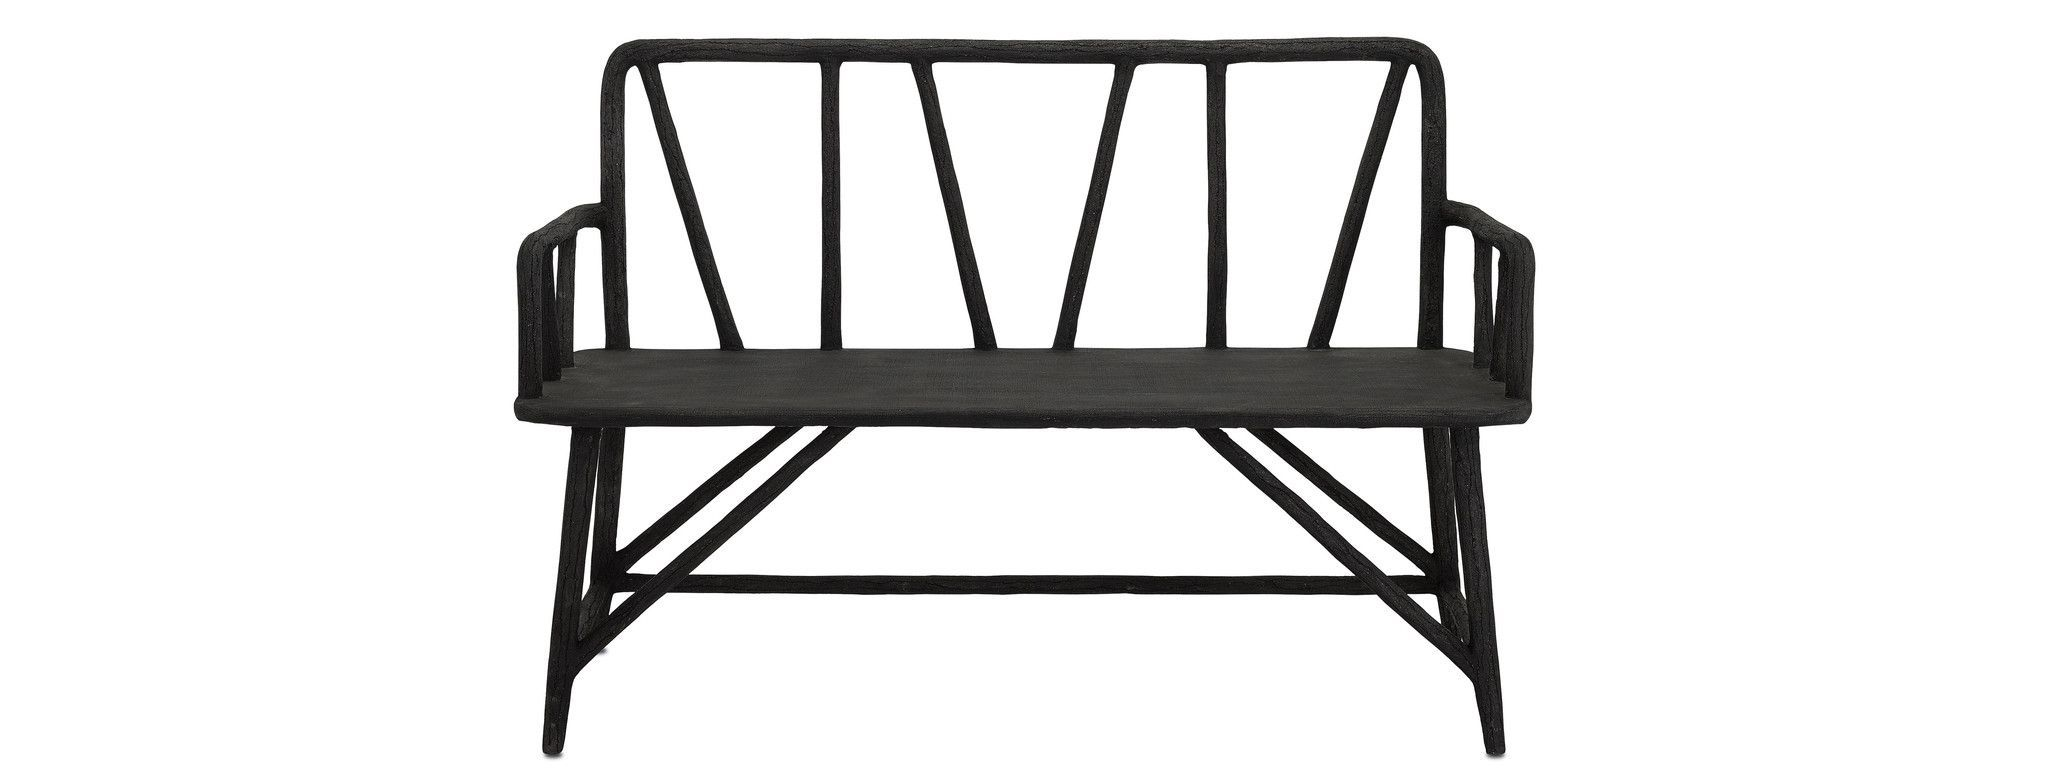 Excellent Arboria Bench In Distressed Black Design By Currey Company Bralicious Painted Fabric Chair Ideas Braliciousco